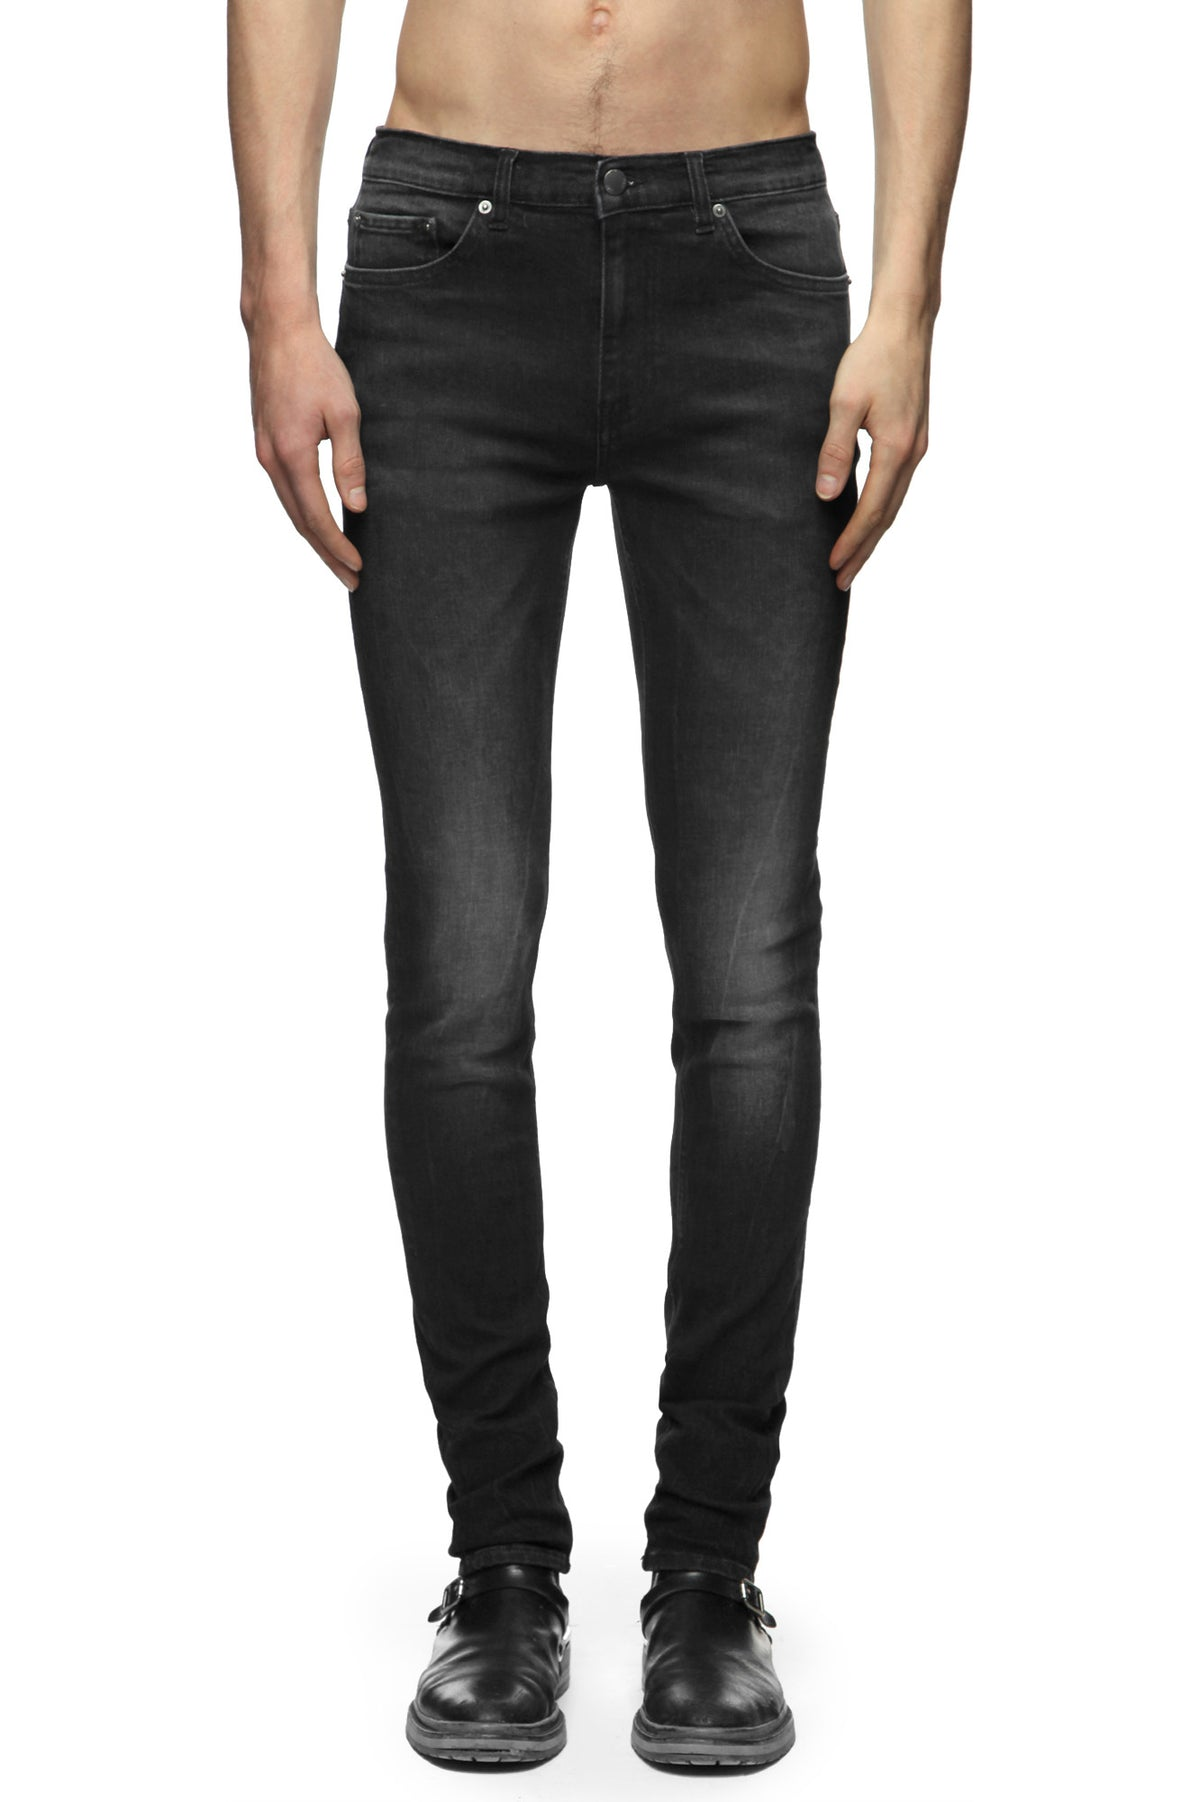 Mens Jeans 25 Fleet Black